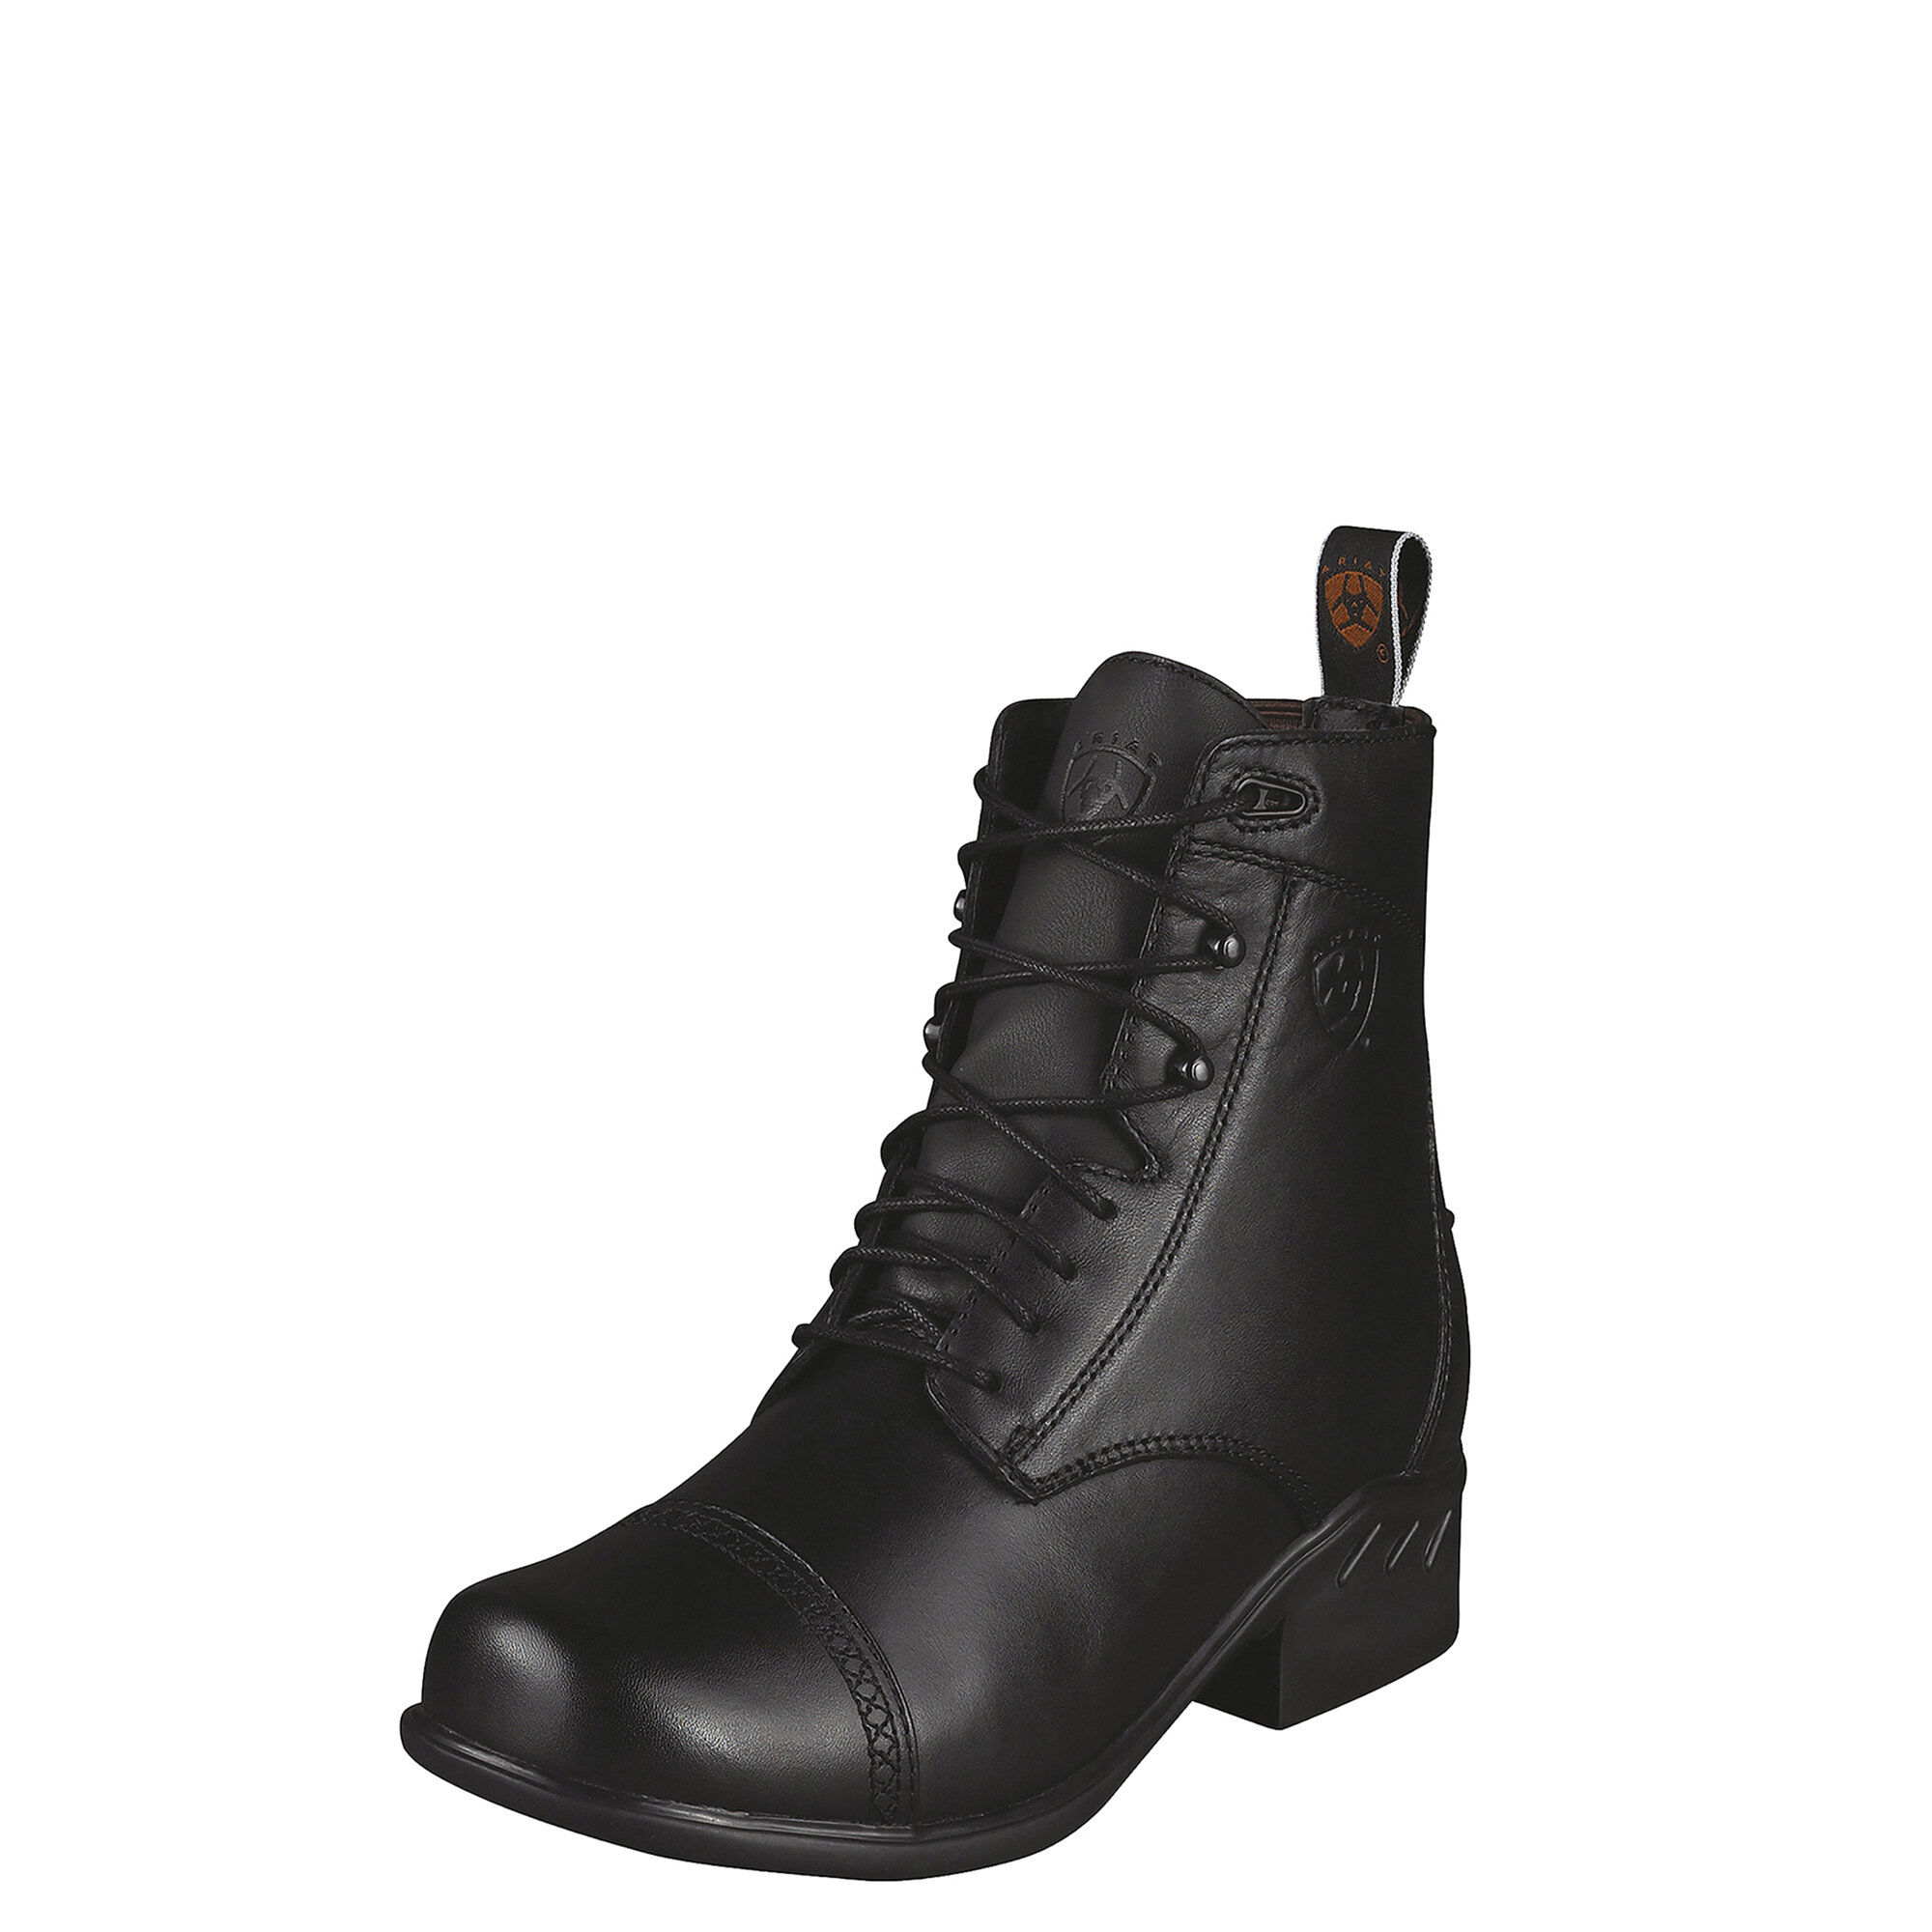 Women's Heritage RT Paddock Paddock Boots in Black by Ariat